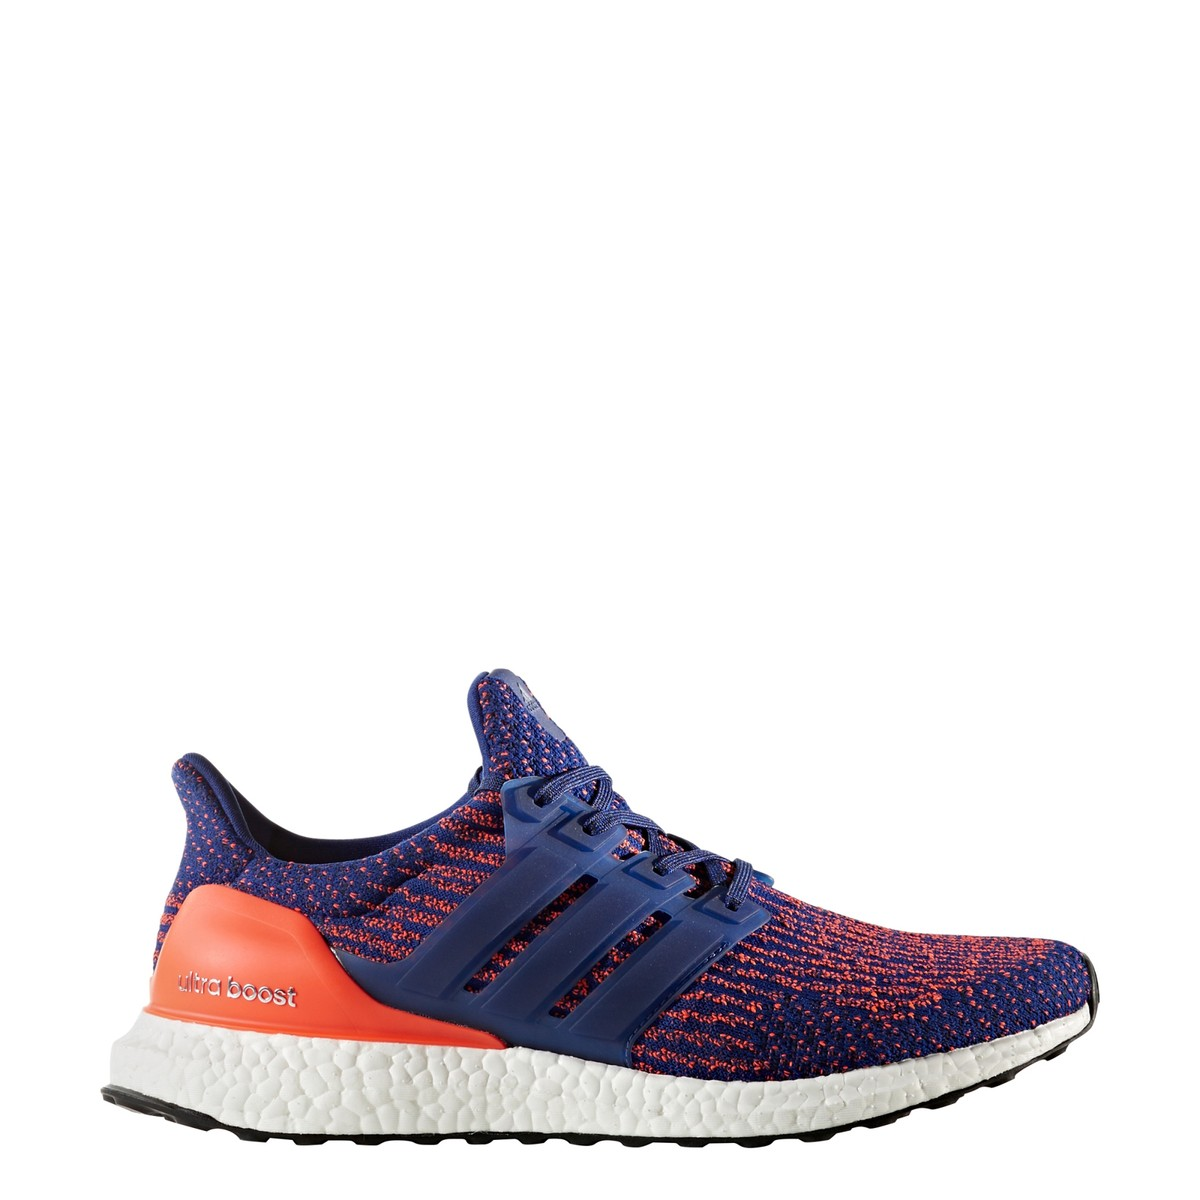 Adidas Performance Ultra Boost Running Shoes